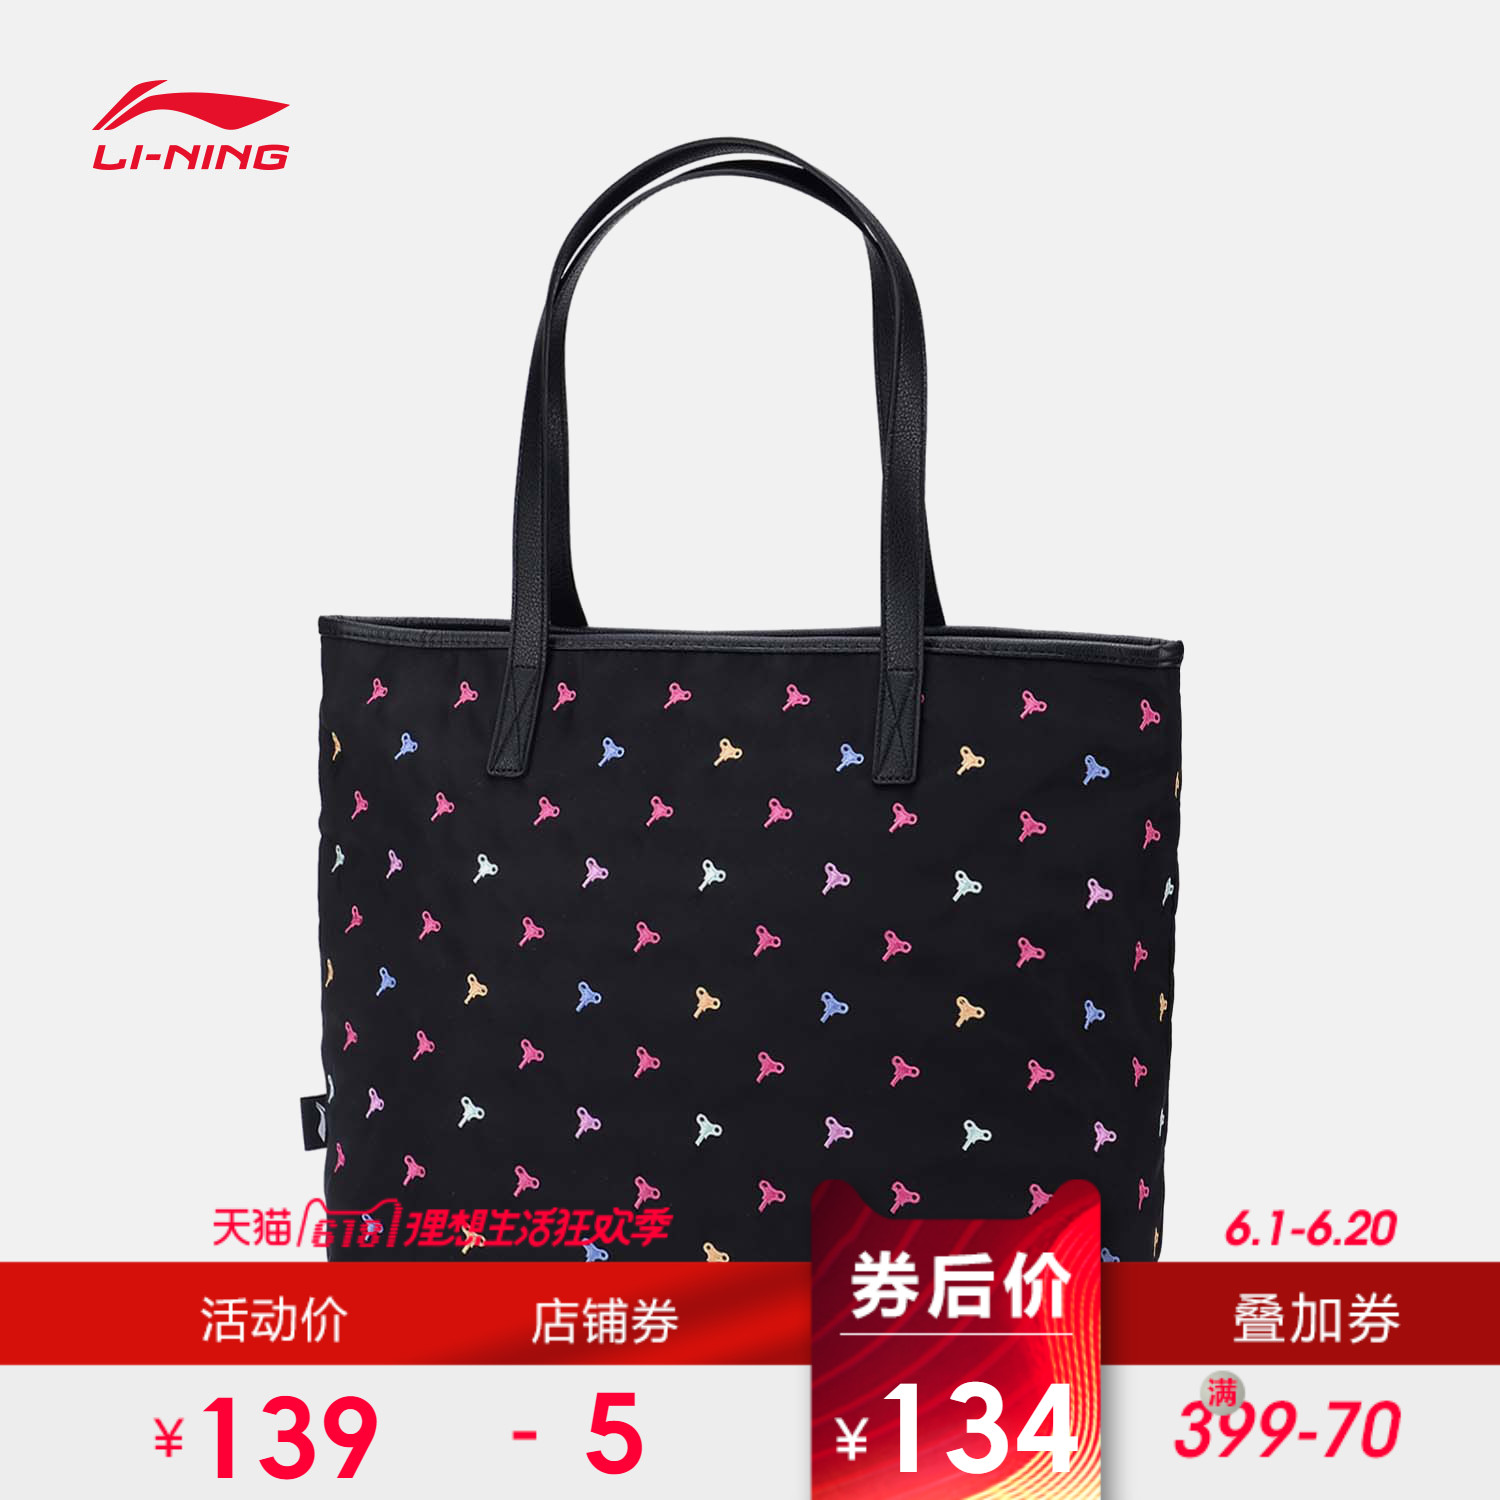 [The goods stop production and no stock][The goods stop production and no stock]Li Ning sports life hand bag bag sports bag ABLL058